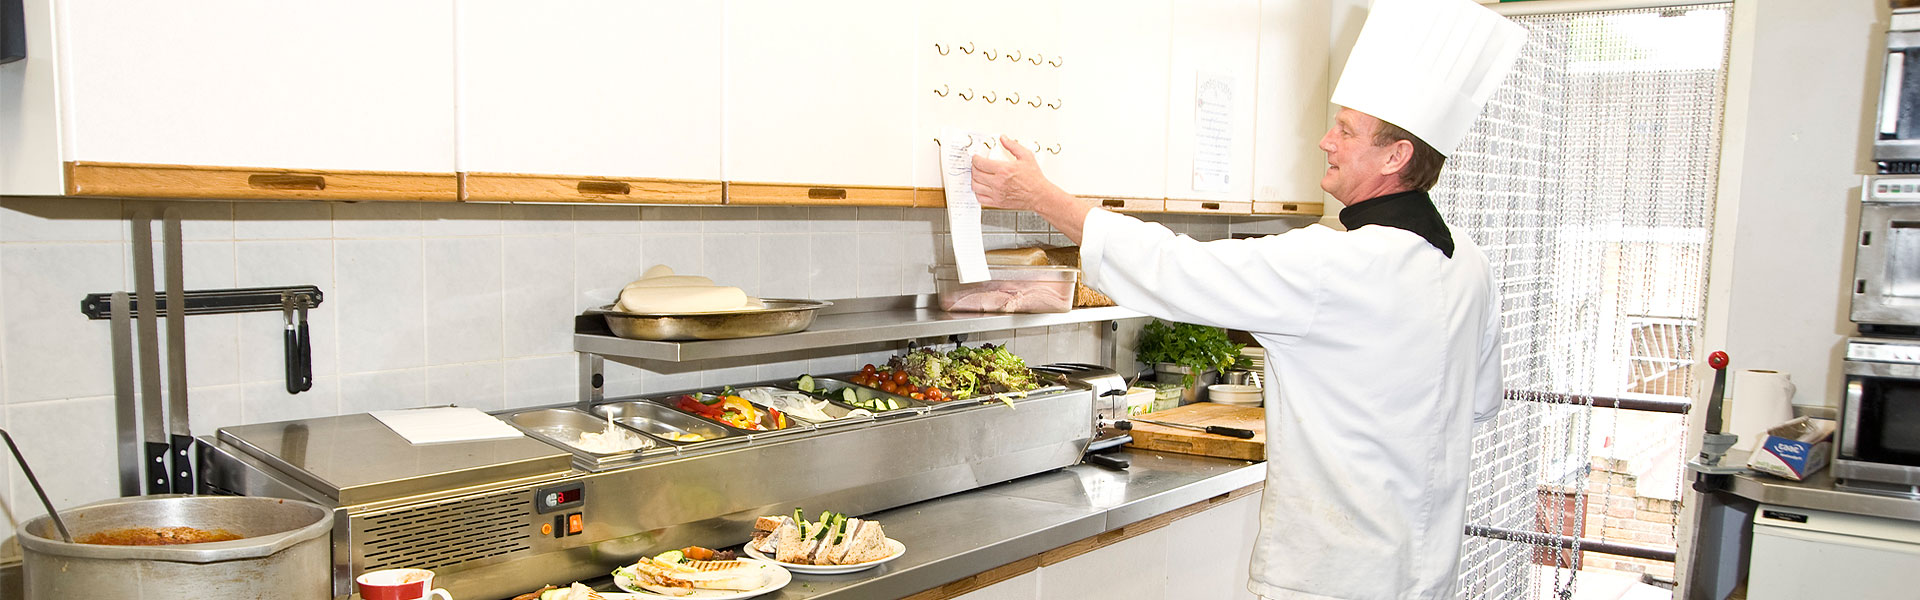 Top 5 tips for kitchen hygiene    - The Hygiene Company